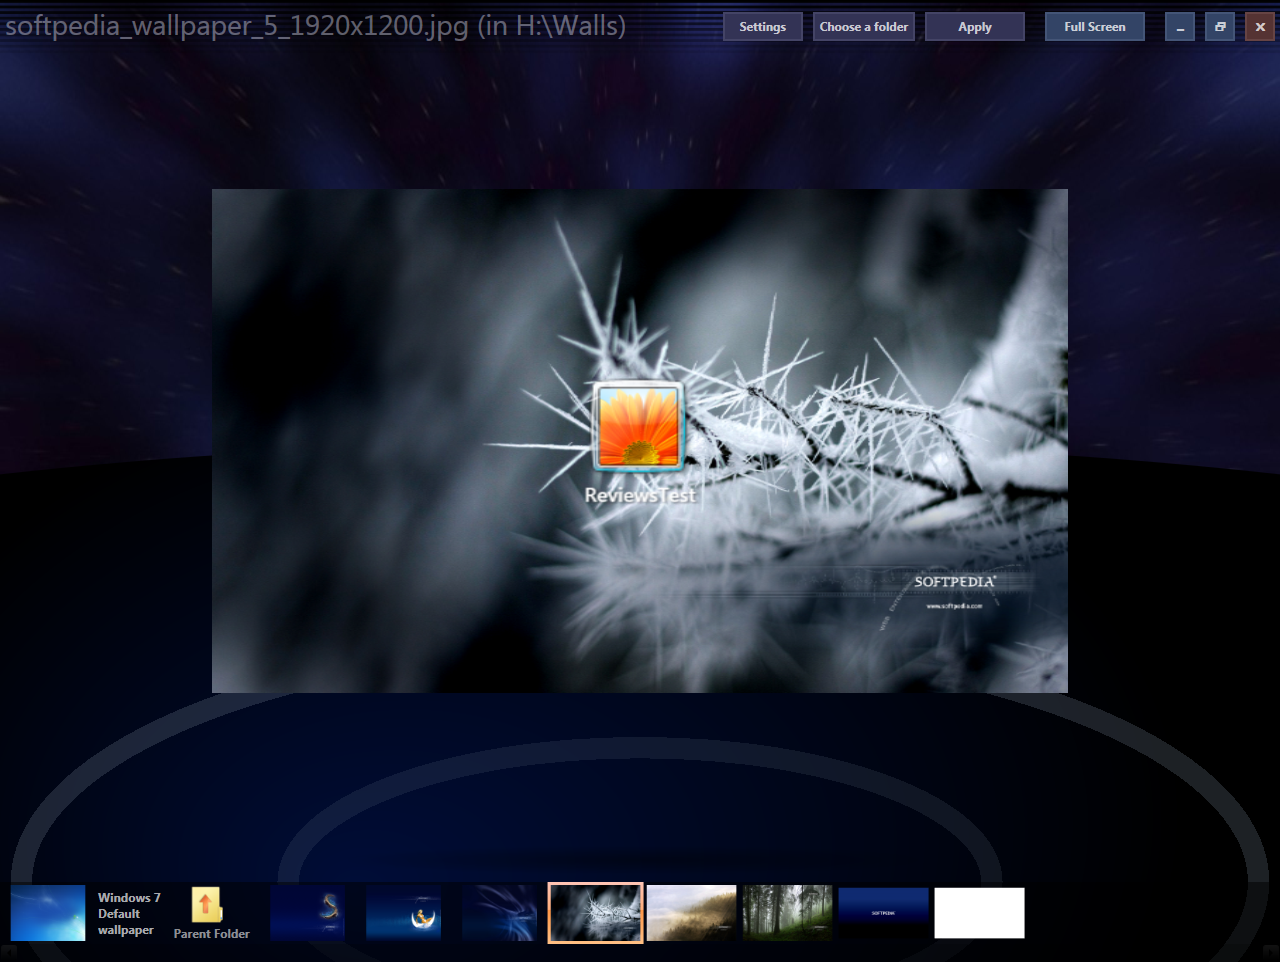 Wallpaper Lock Screen Windows 7: Customize Windows 7 Lock, Log On/Off Screen